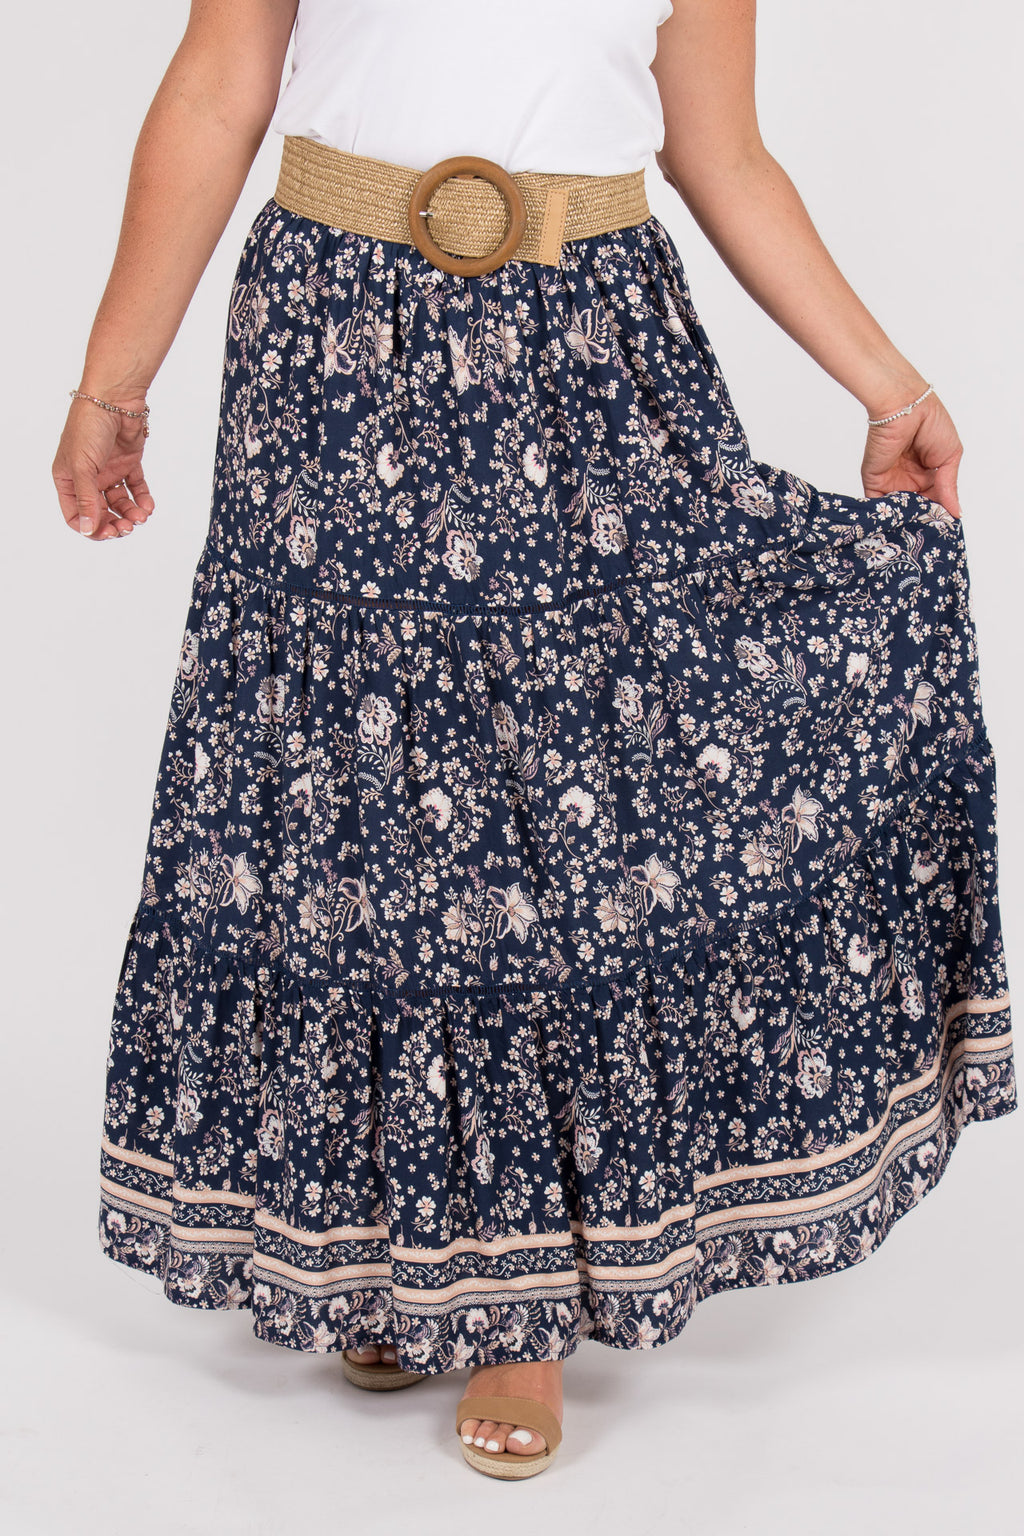 Arizona Maxi Skirt in Navy Peach